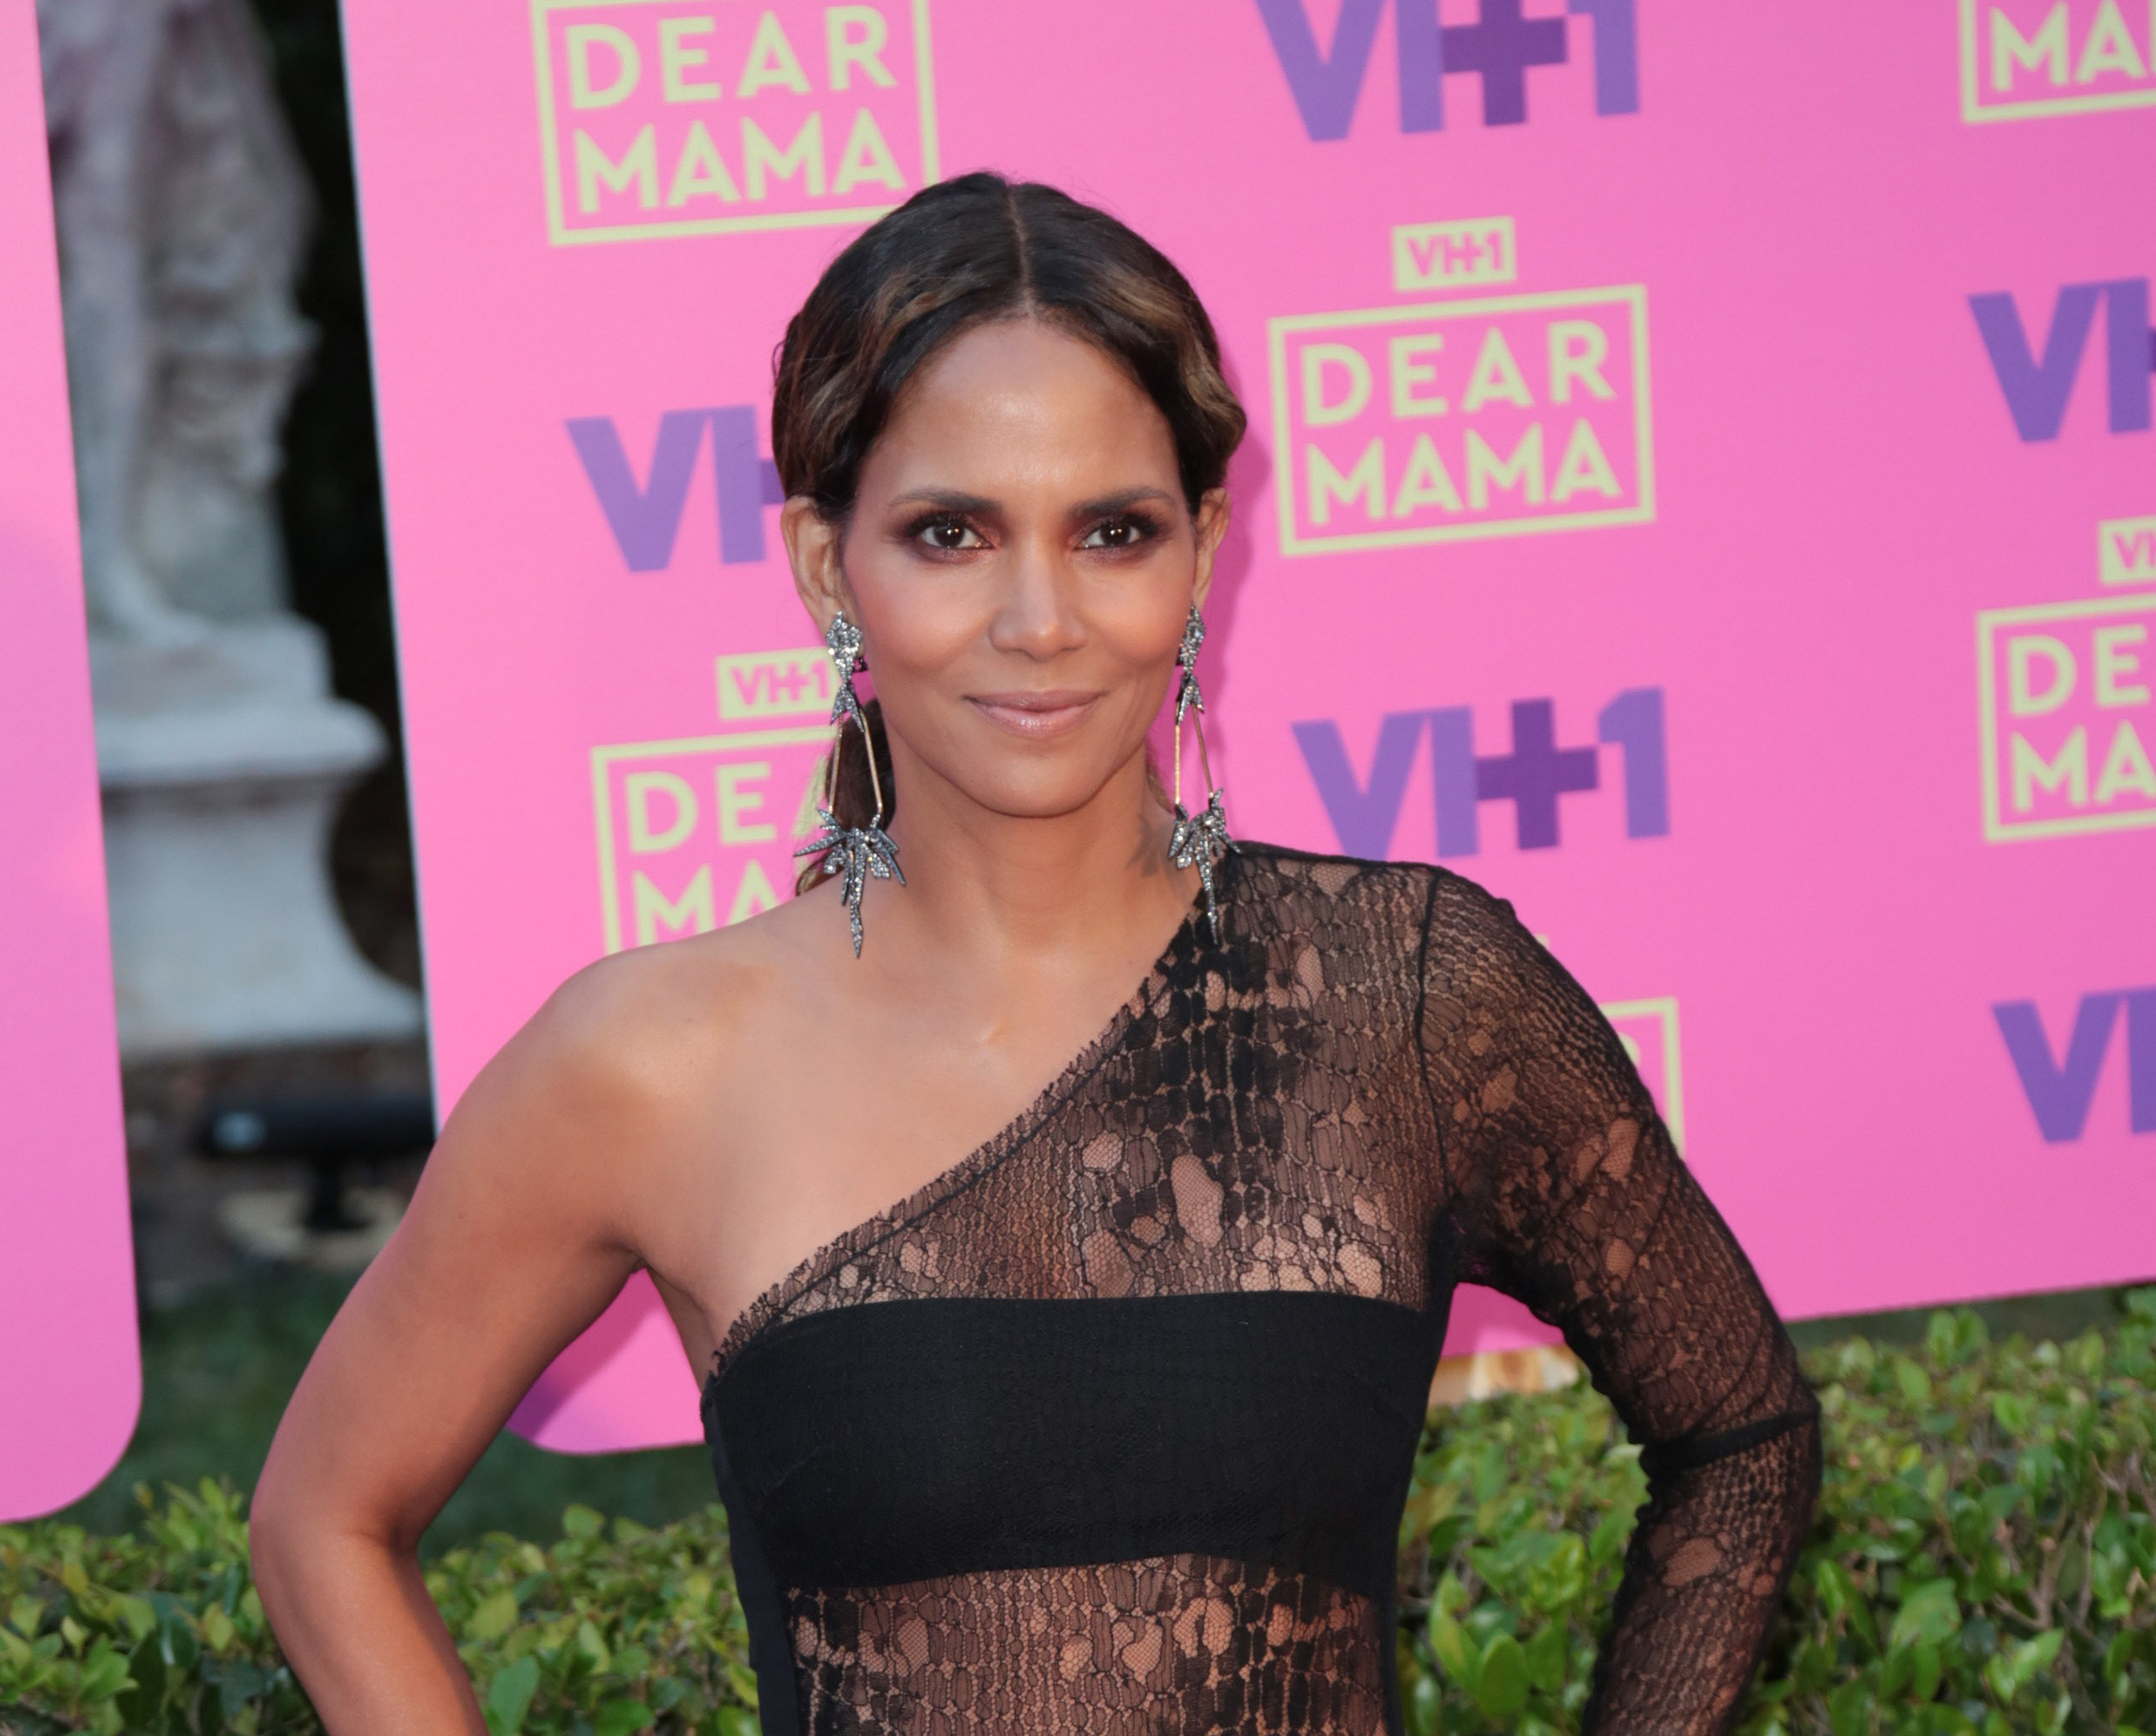 Halle Berry Reveals Diet That Slowed 'Aging Process' & Reversed Diabetes - Magazine cover